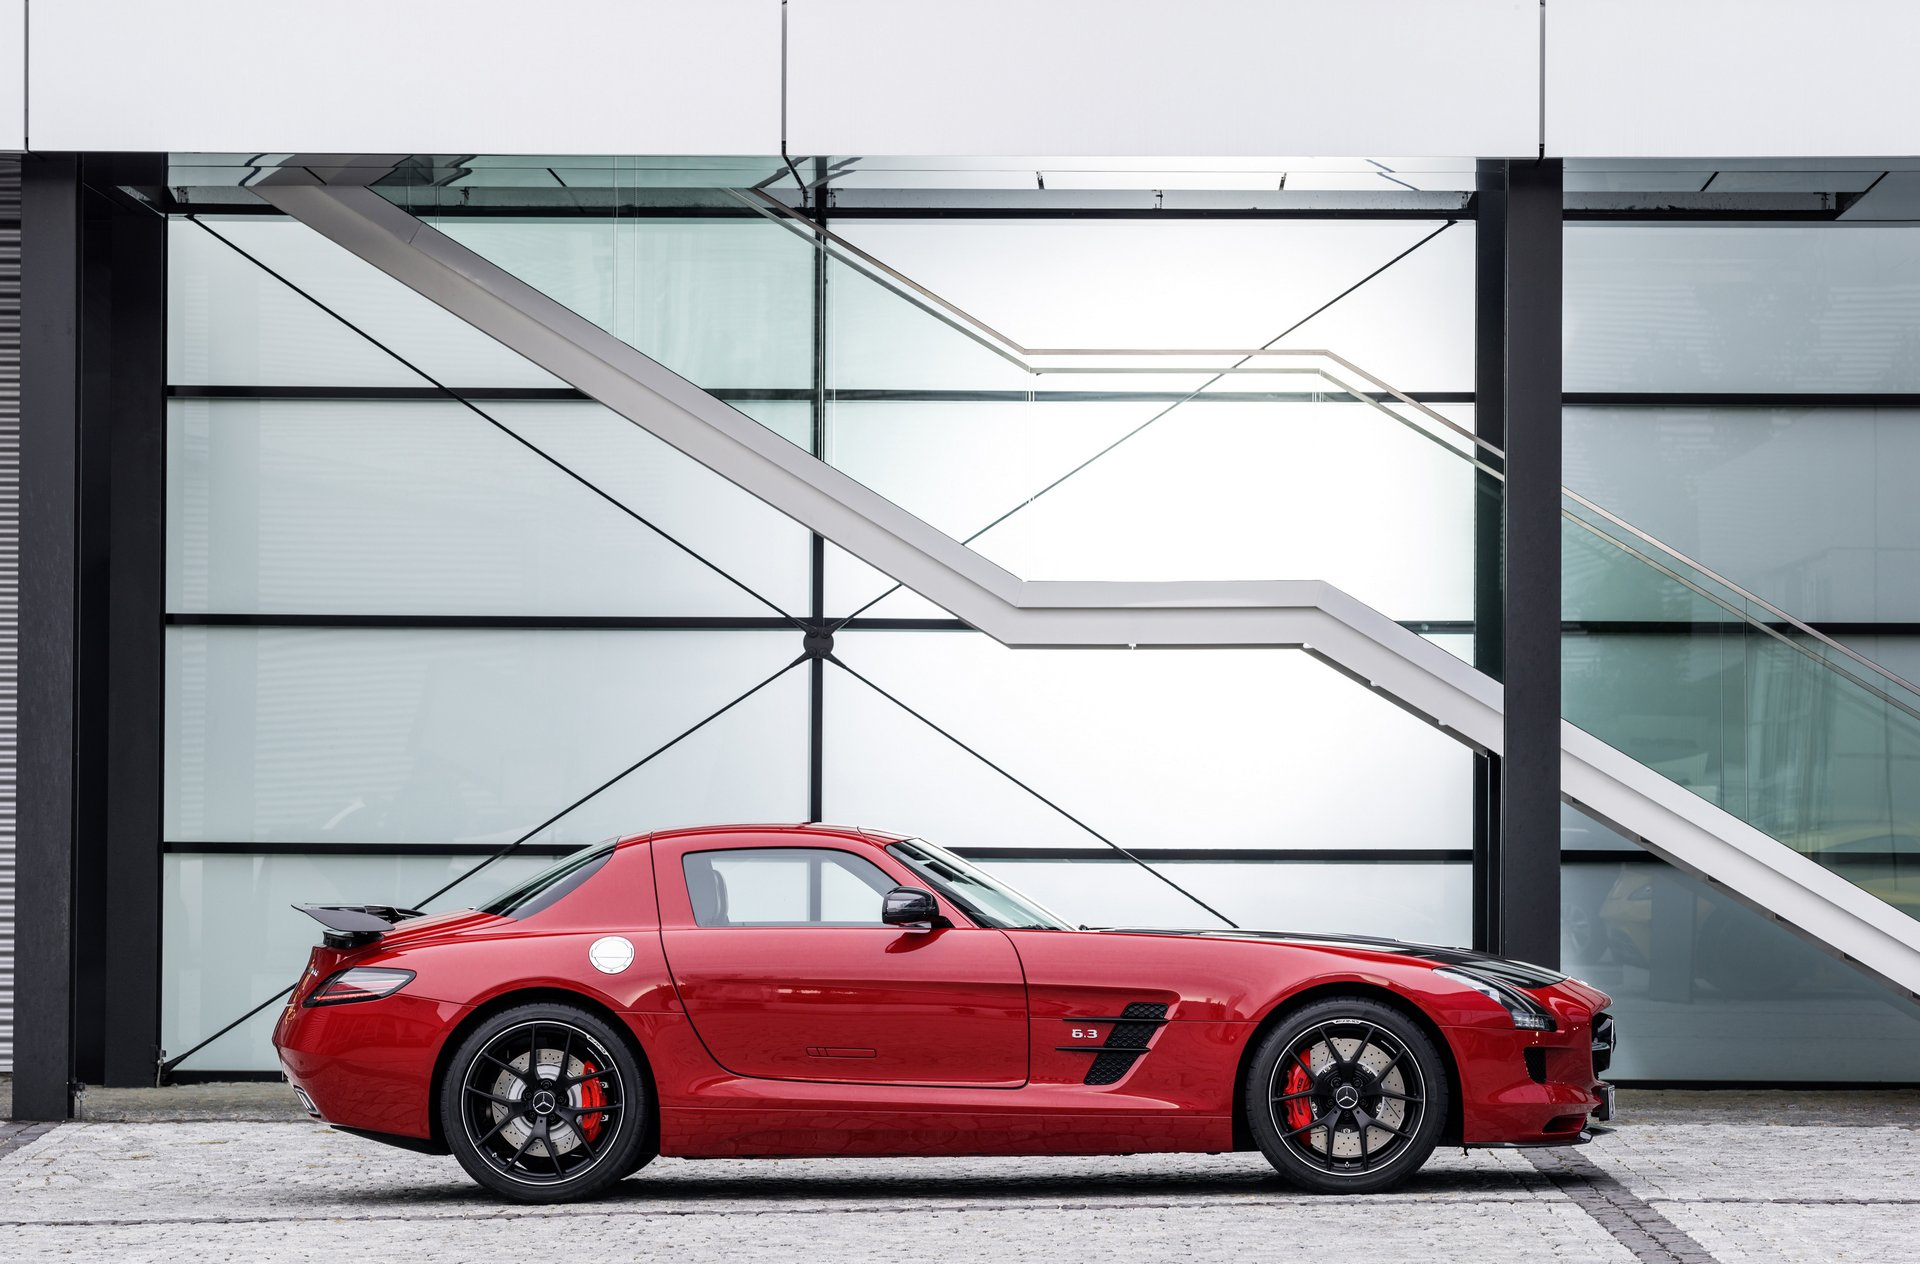 Mercedes-Benz Sls Amg Gt Final Edition #1